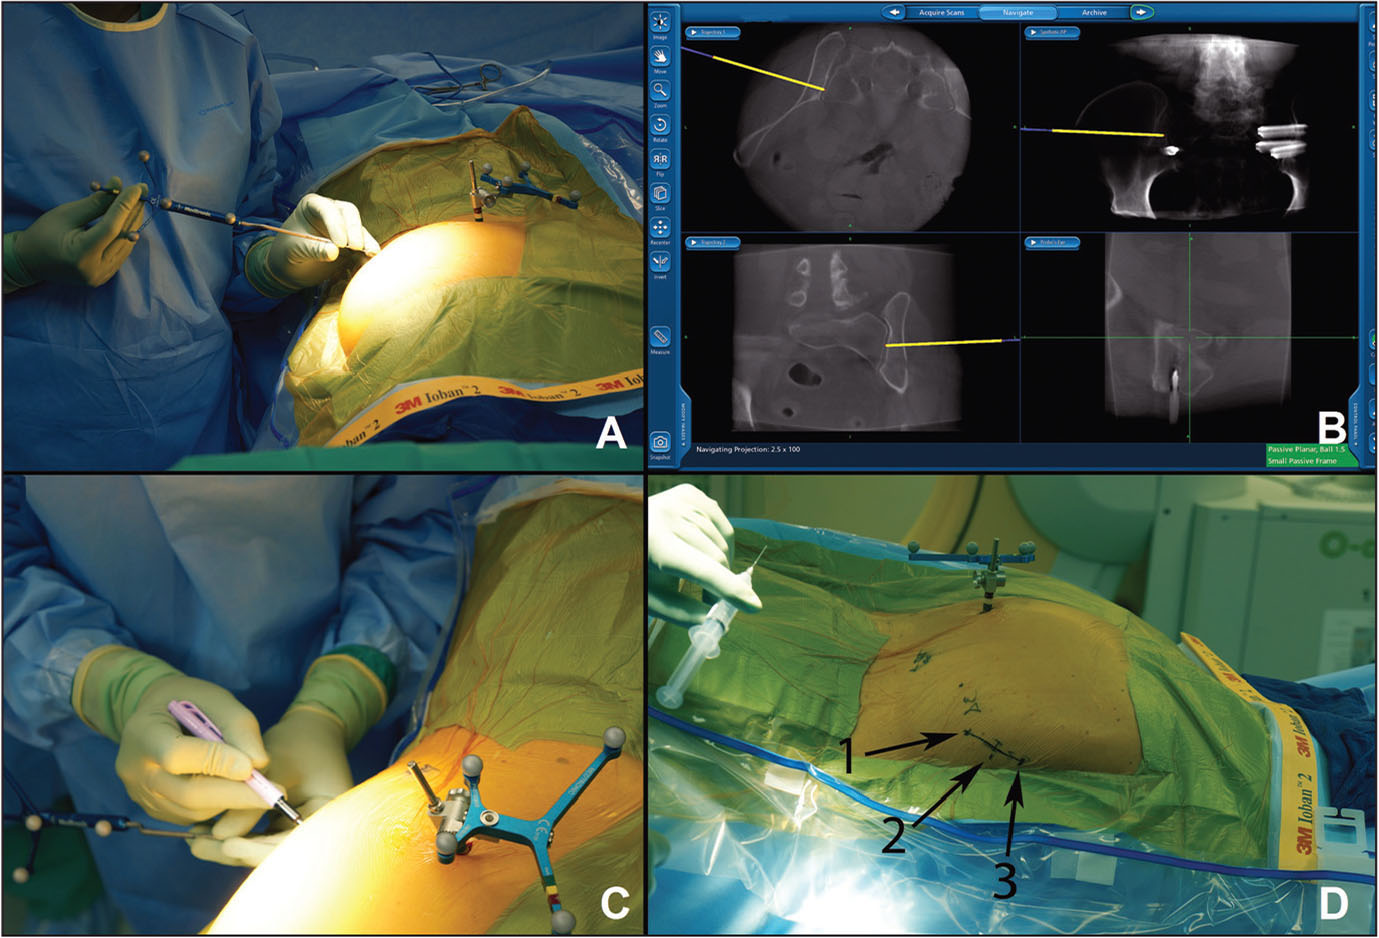 Identifying approximate implant entry points using the ball-tipped navigation probe on the skin with a StealthStation-generated projection (Medtronic, Minneapolis, Minnesota) (A, B). Marking locations on the skin and mapping the incision (C, D) with approximate implant entry points labeled 1, 2, and 3.